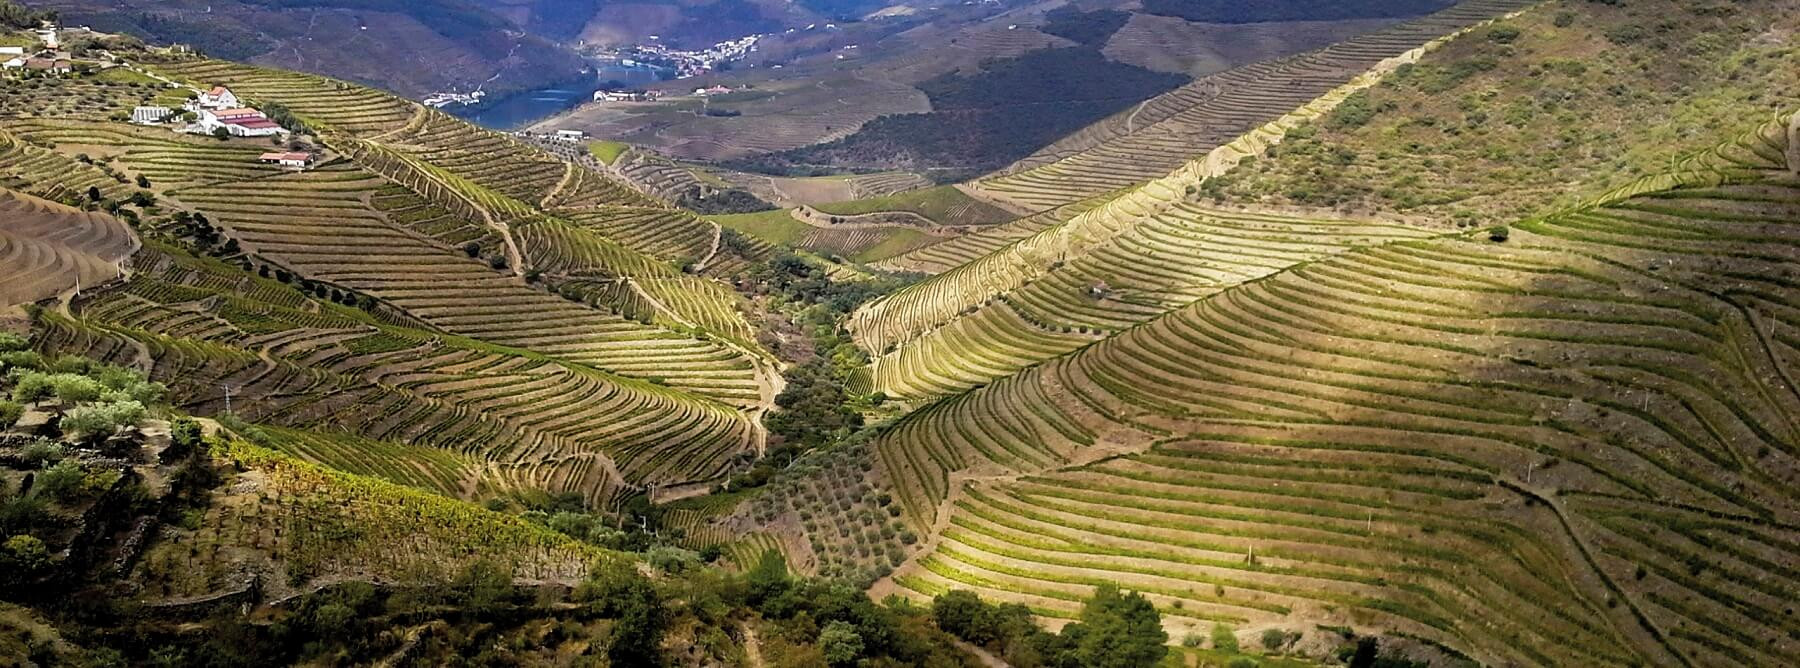 Portugal :  a traditional Douro 2019 vintage